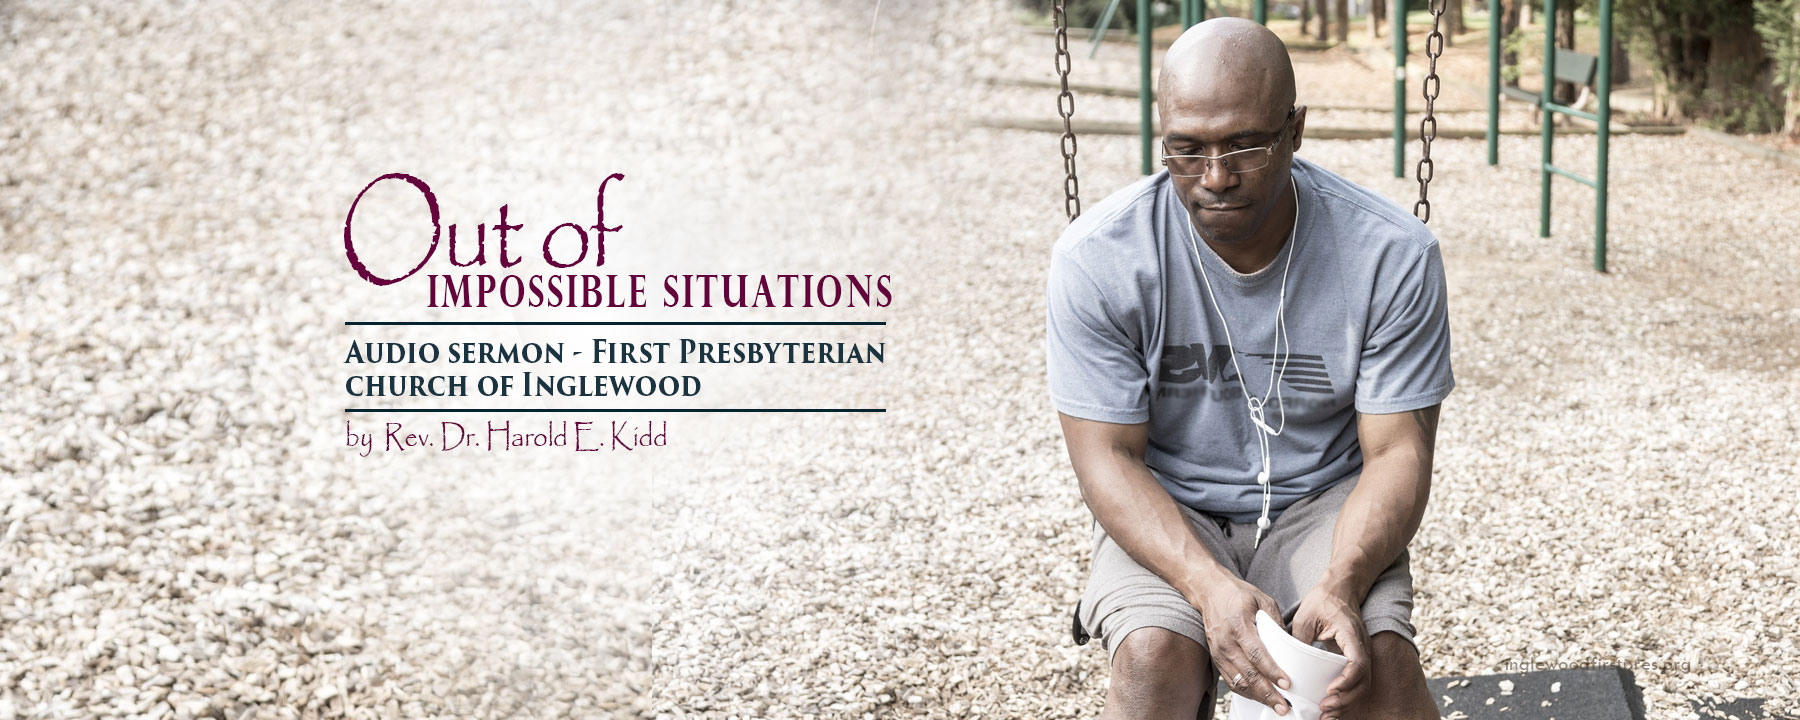 Audio Sermon: Out of Impossible Situations by Rev. Dr. Harold E. Kidd. Get Help!